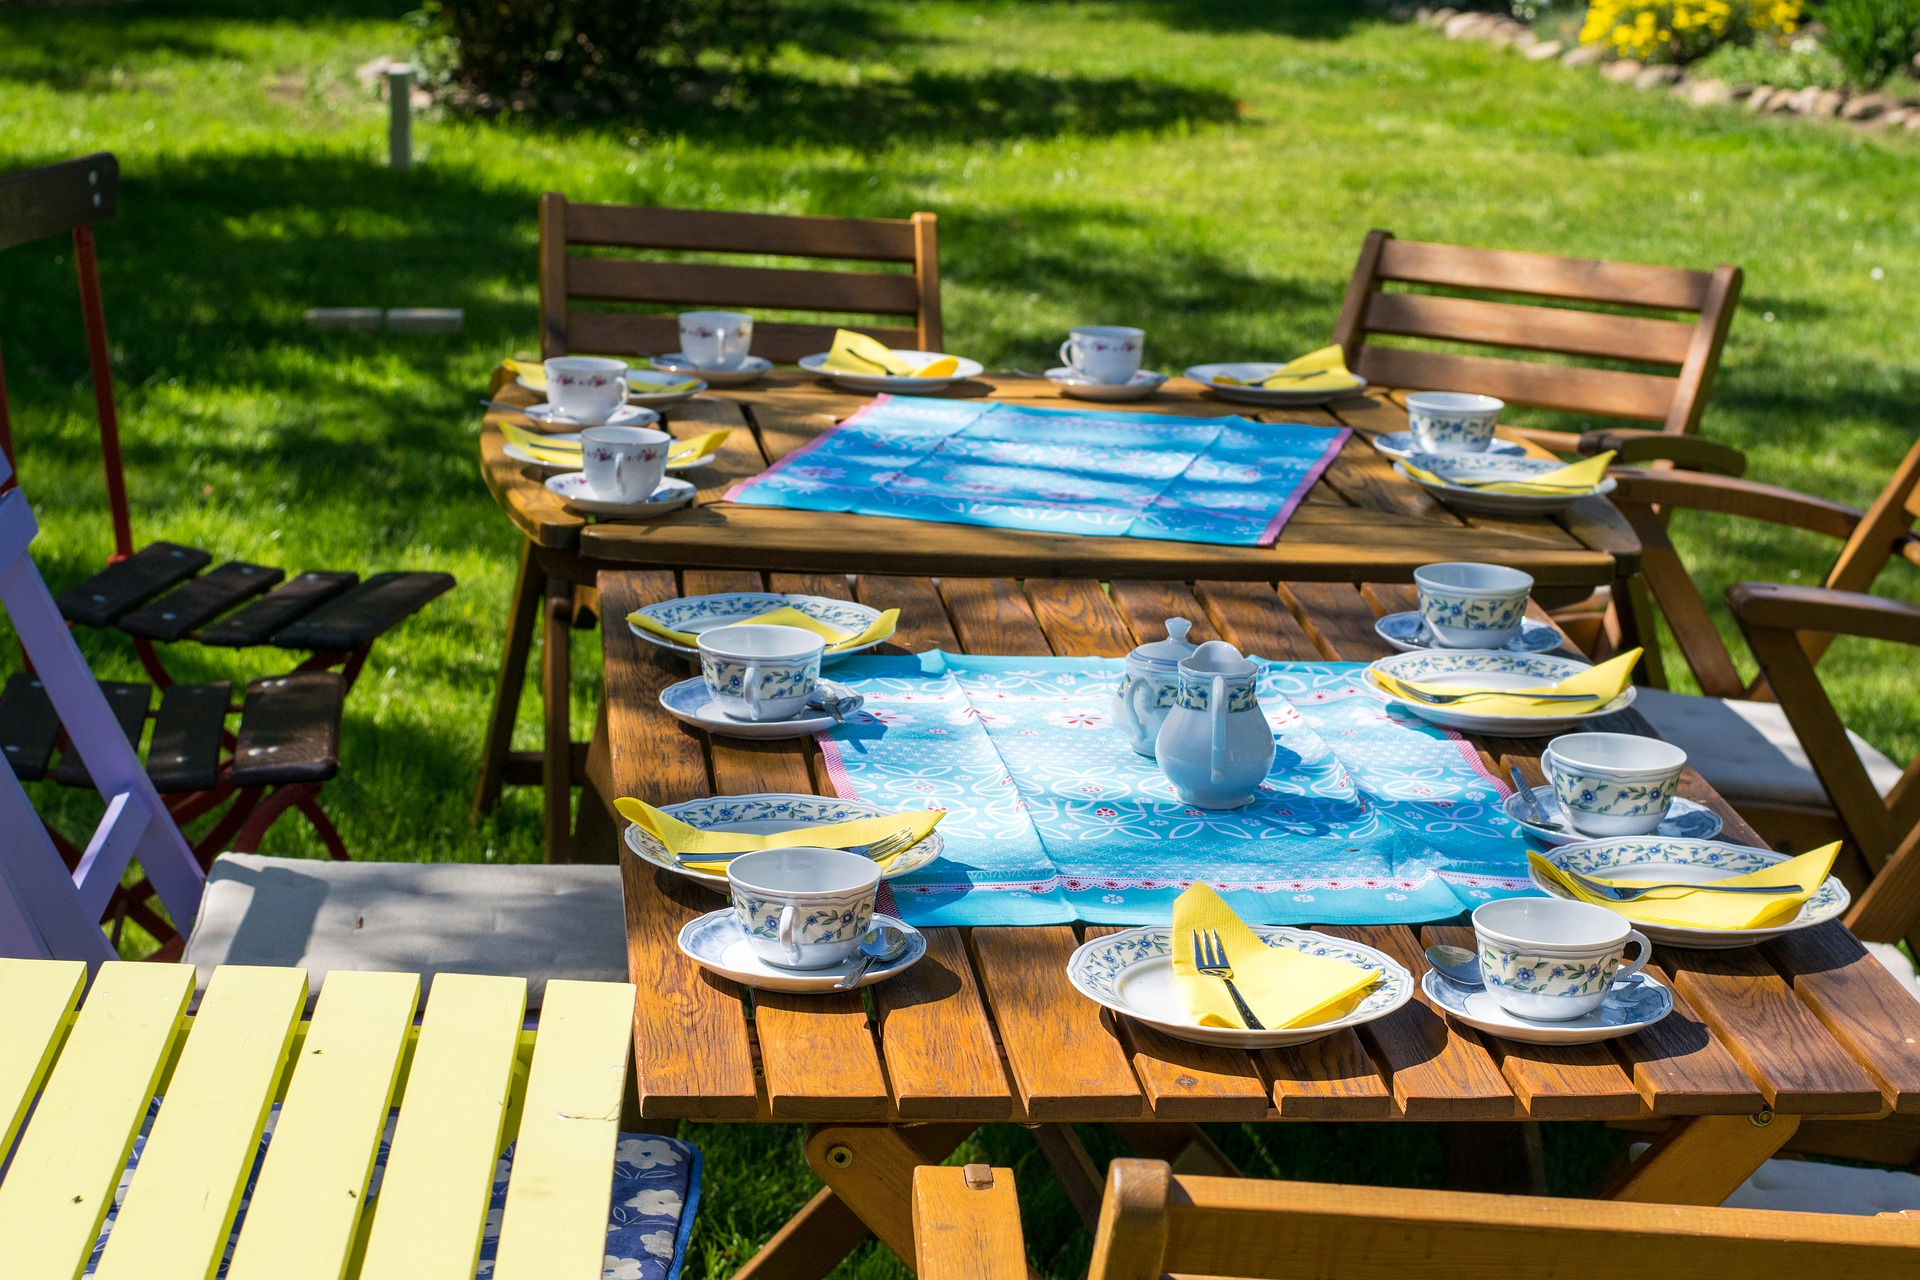 Keep food safety in mind when planning outdoor parties. (Photo courtesy of Pixabay)